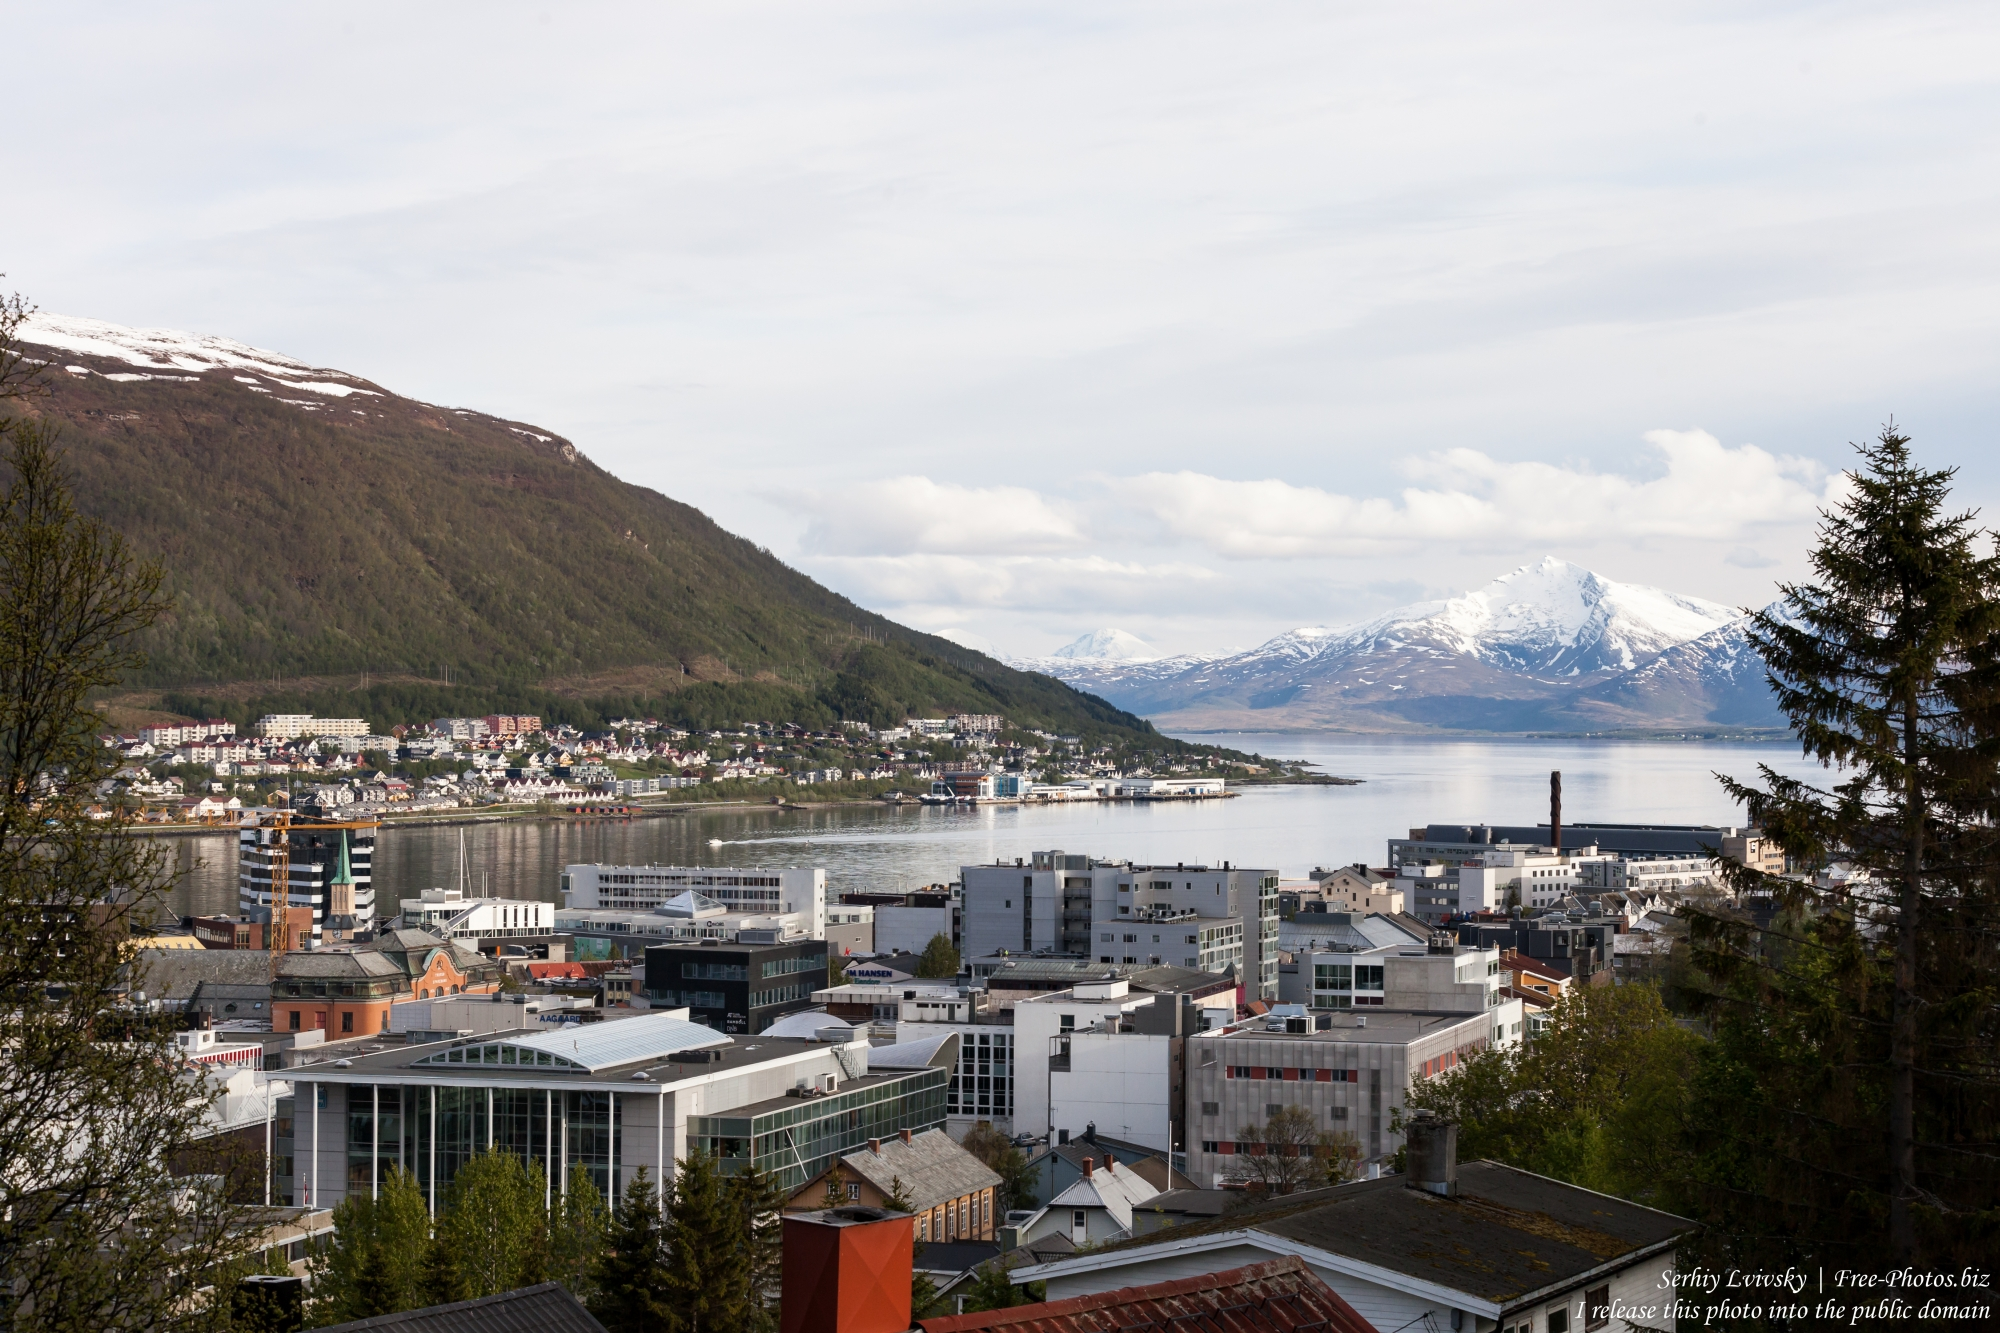 tromso_norway_photographed_in_june_2018_by_serhiy_lvivsky_65